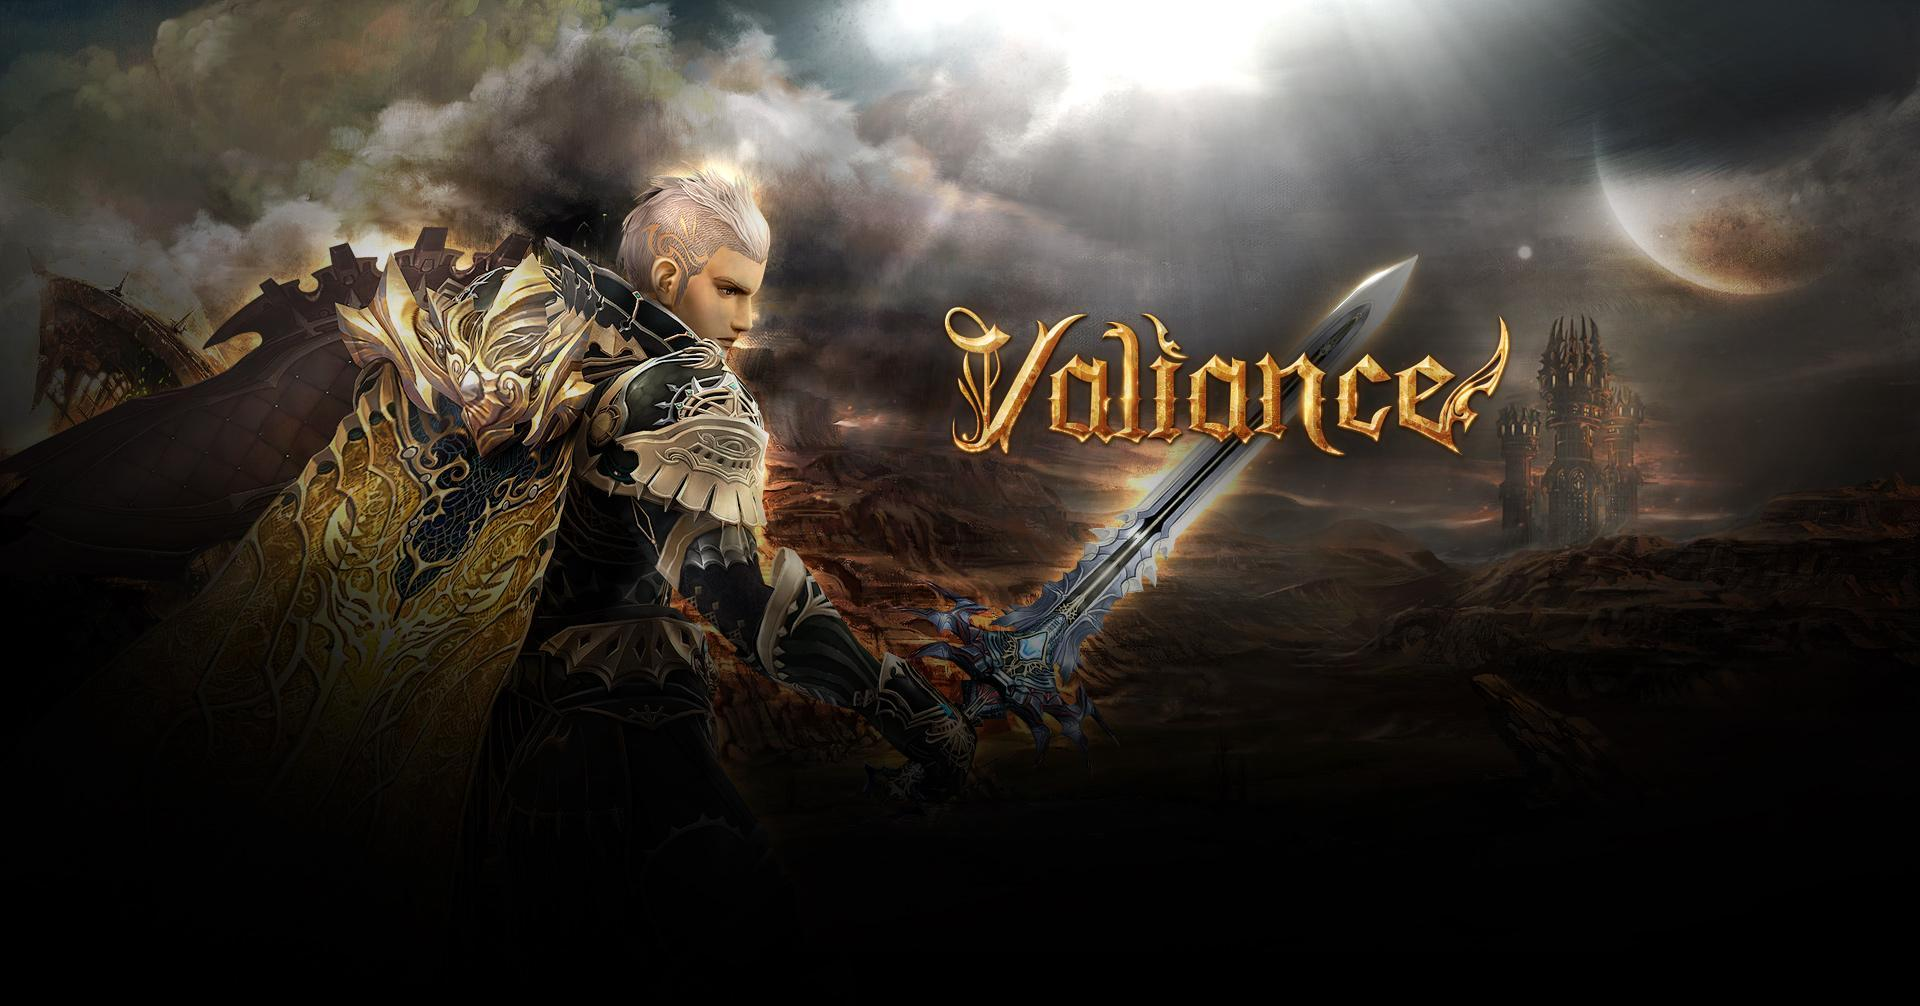 lineage 2 forums: